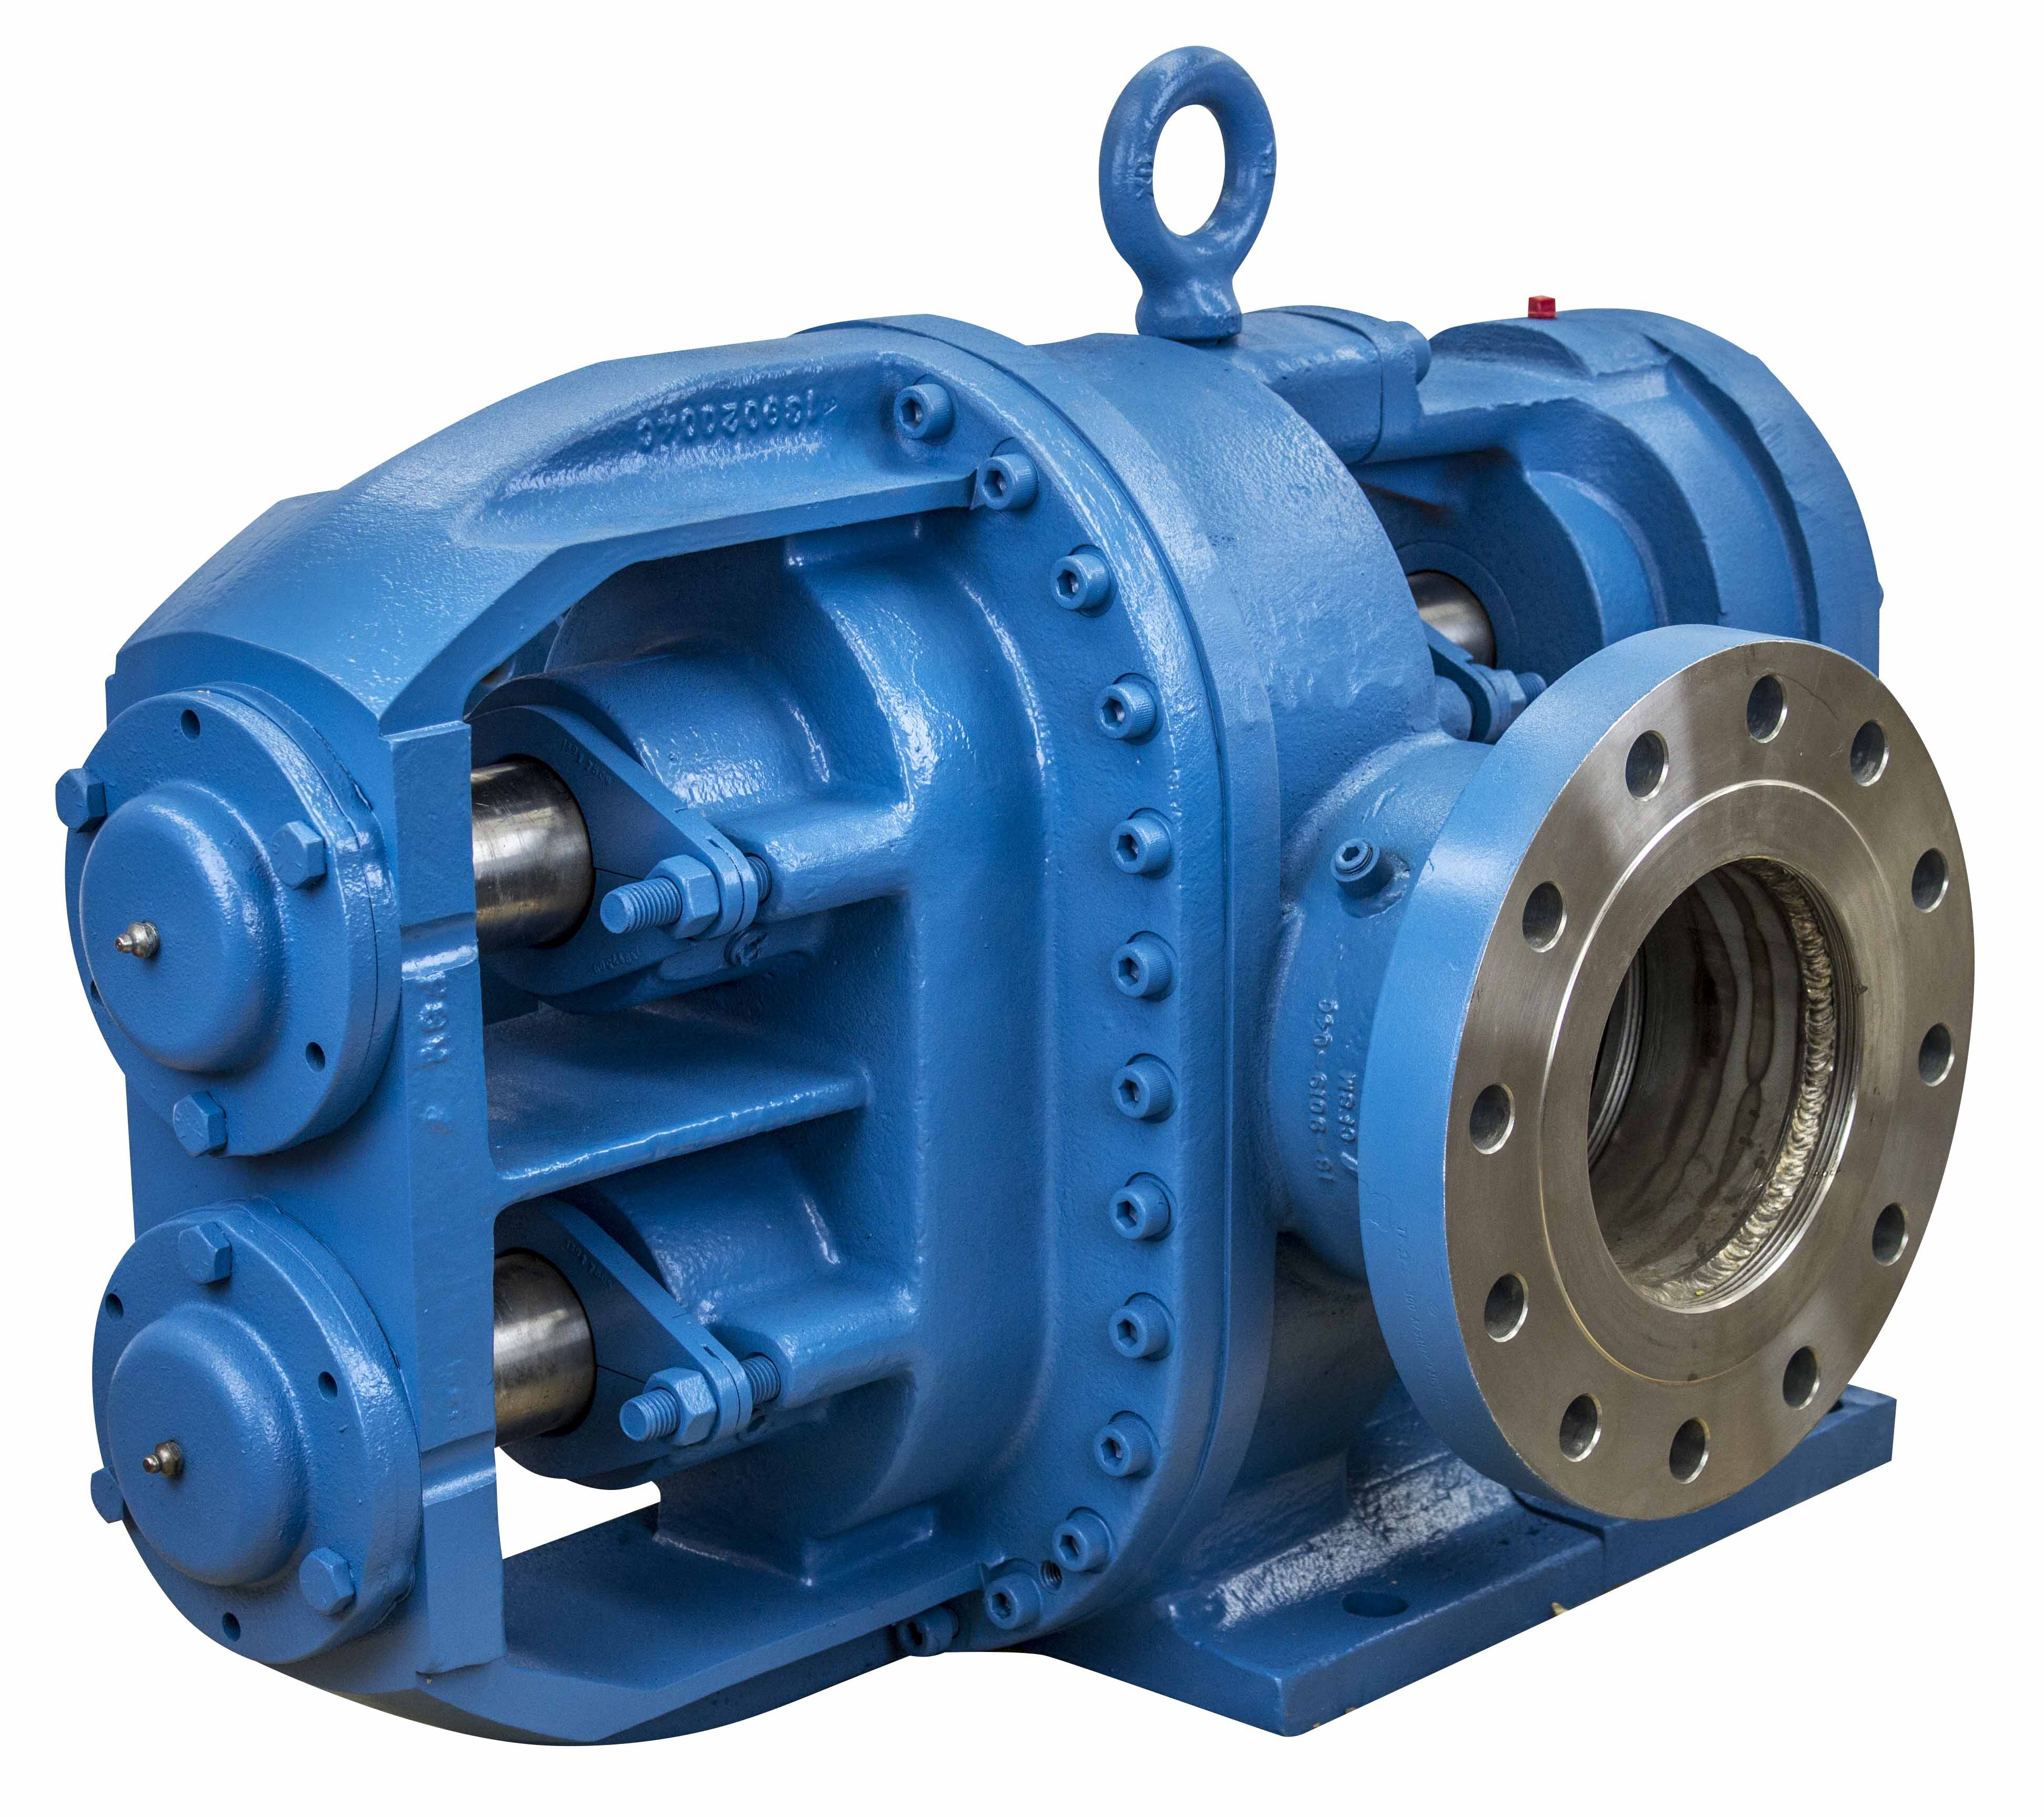 Tuthill HD Heavy Duty Process Pumps